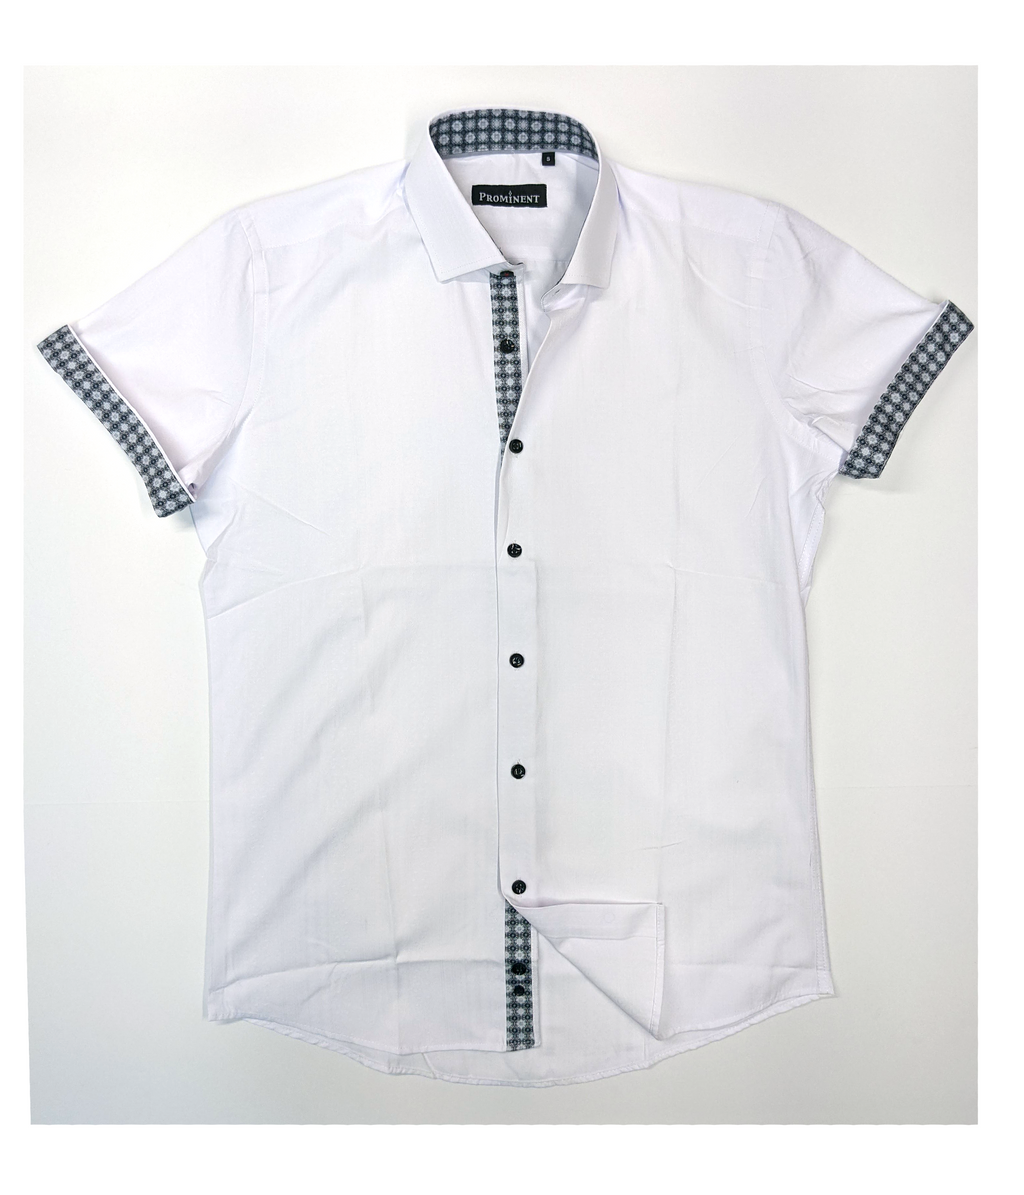 Men's Woven Short Sleeve Dress Shirt